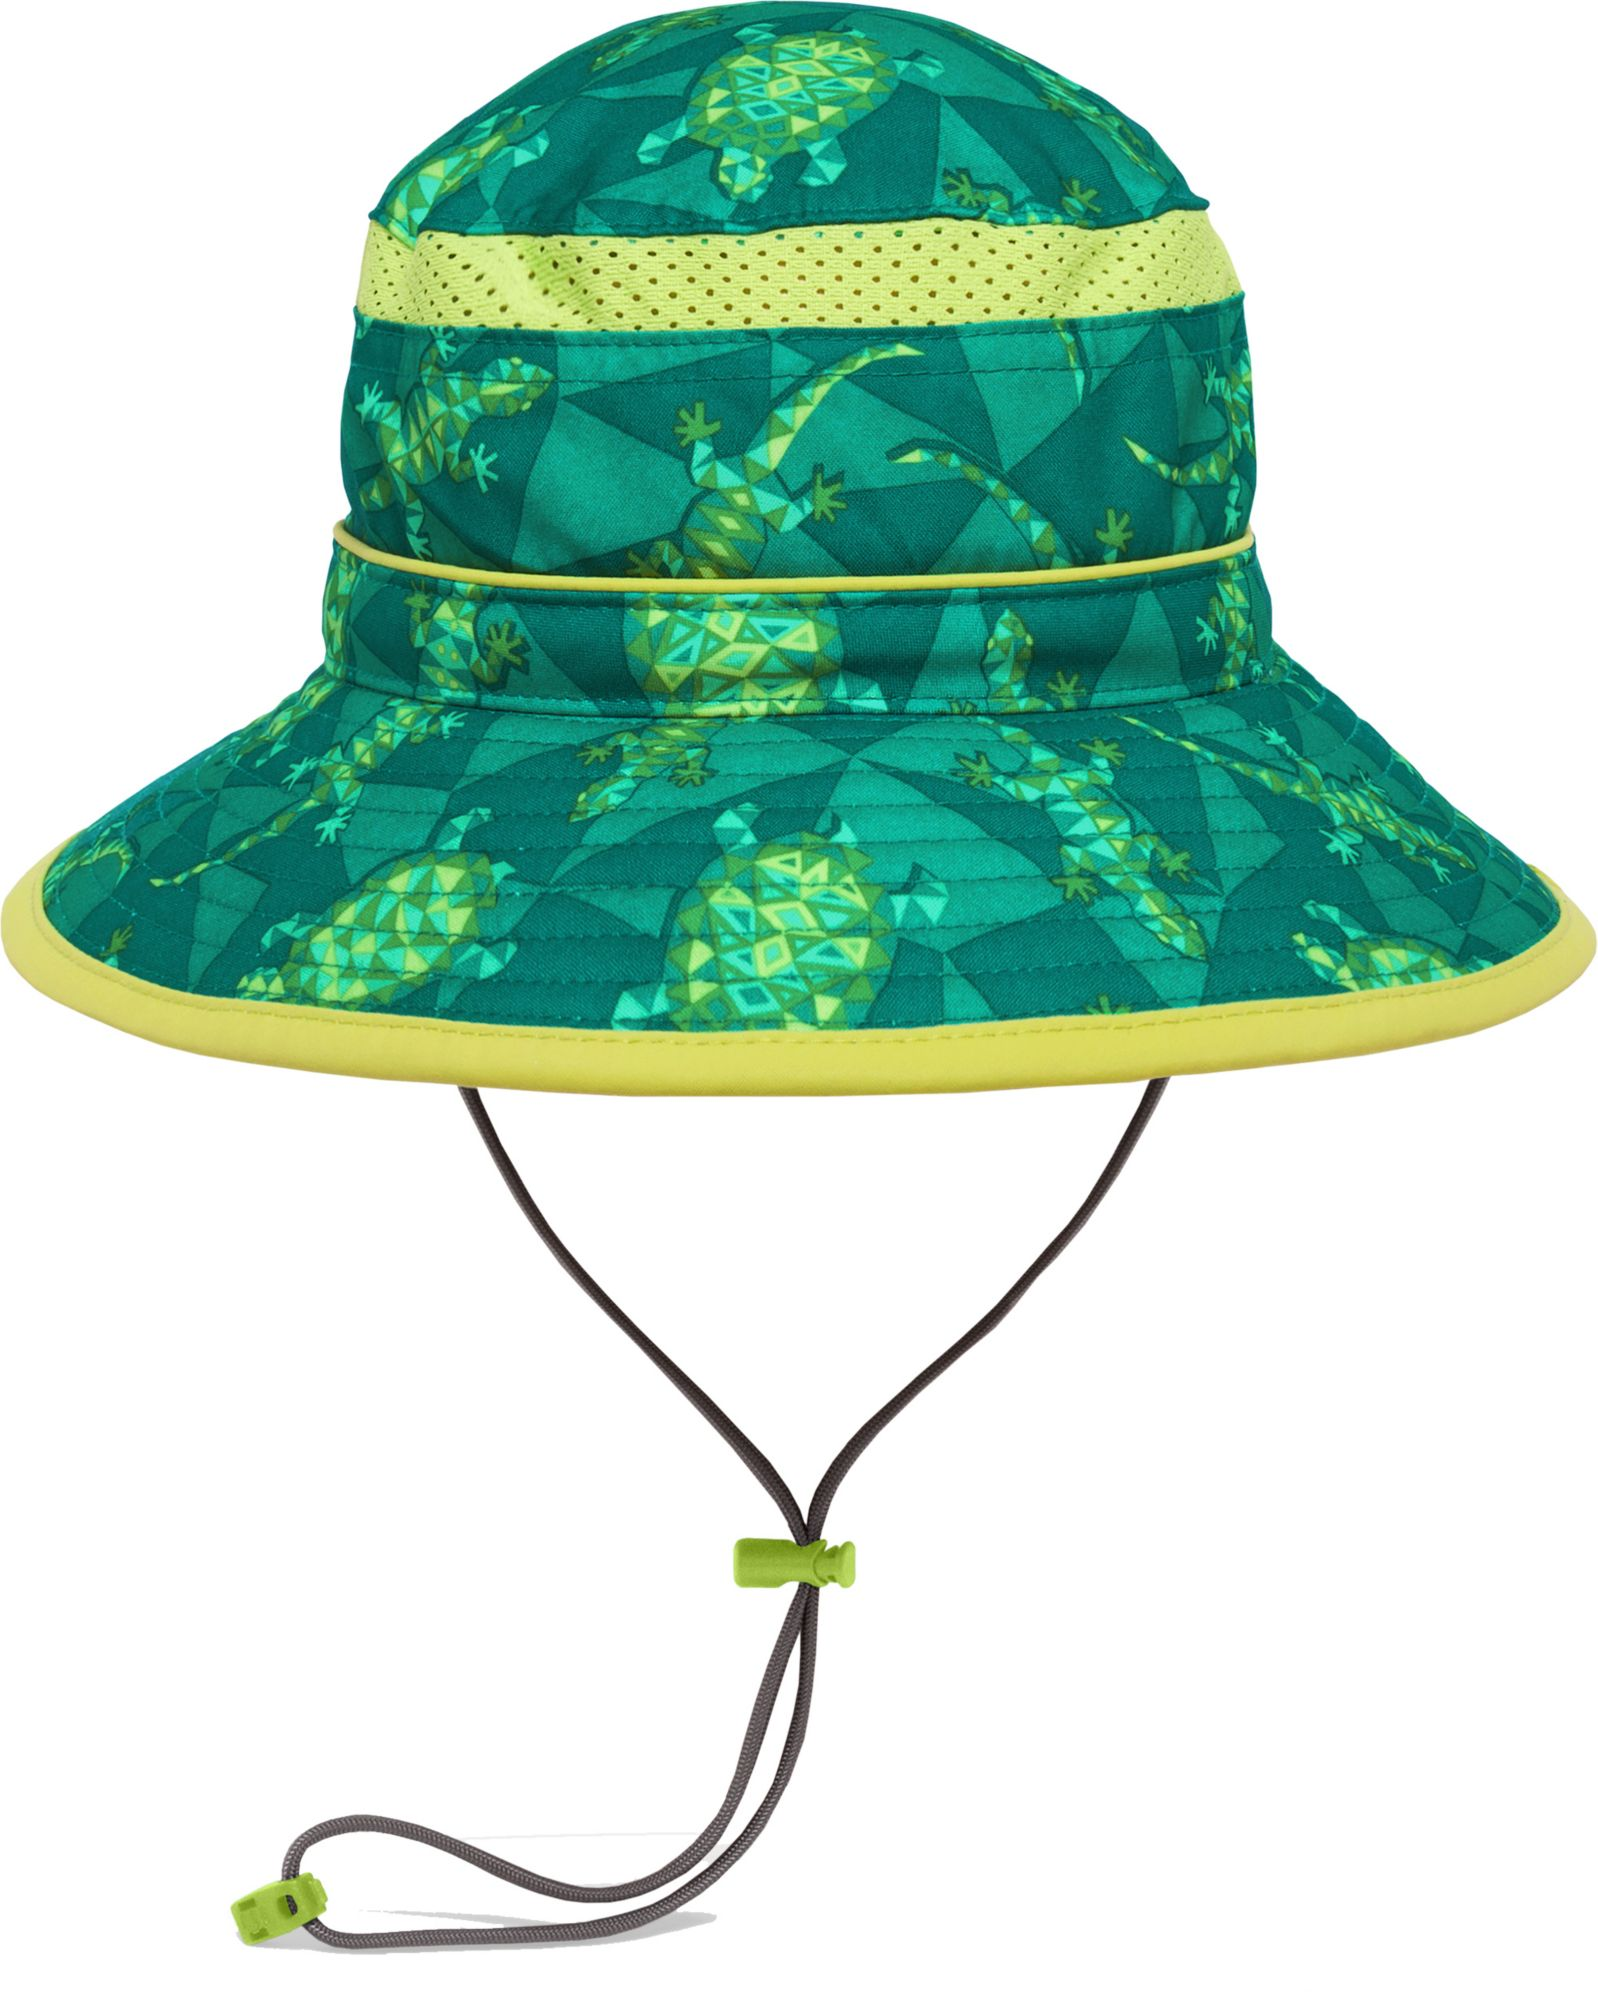 SUNDAY AFTERNOONS BABY AND KIDS BUCKET HAT-UPF 50 3 SIZES MULTIPLE COLORS